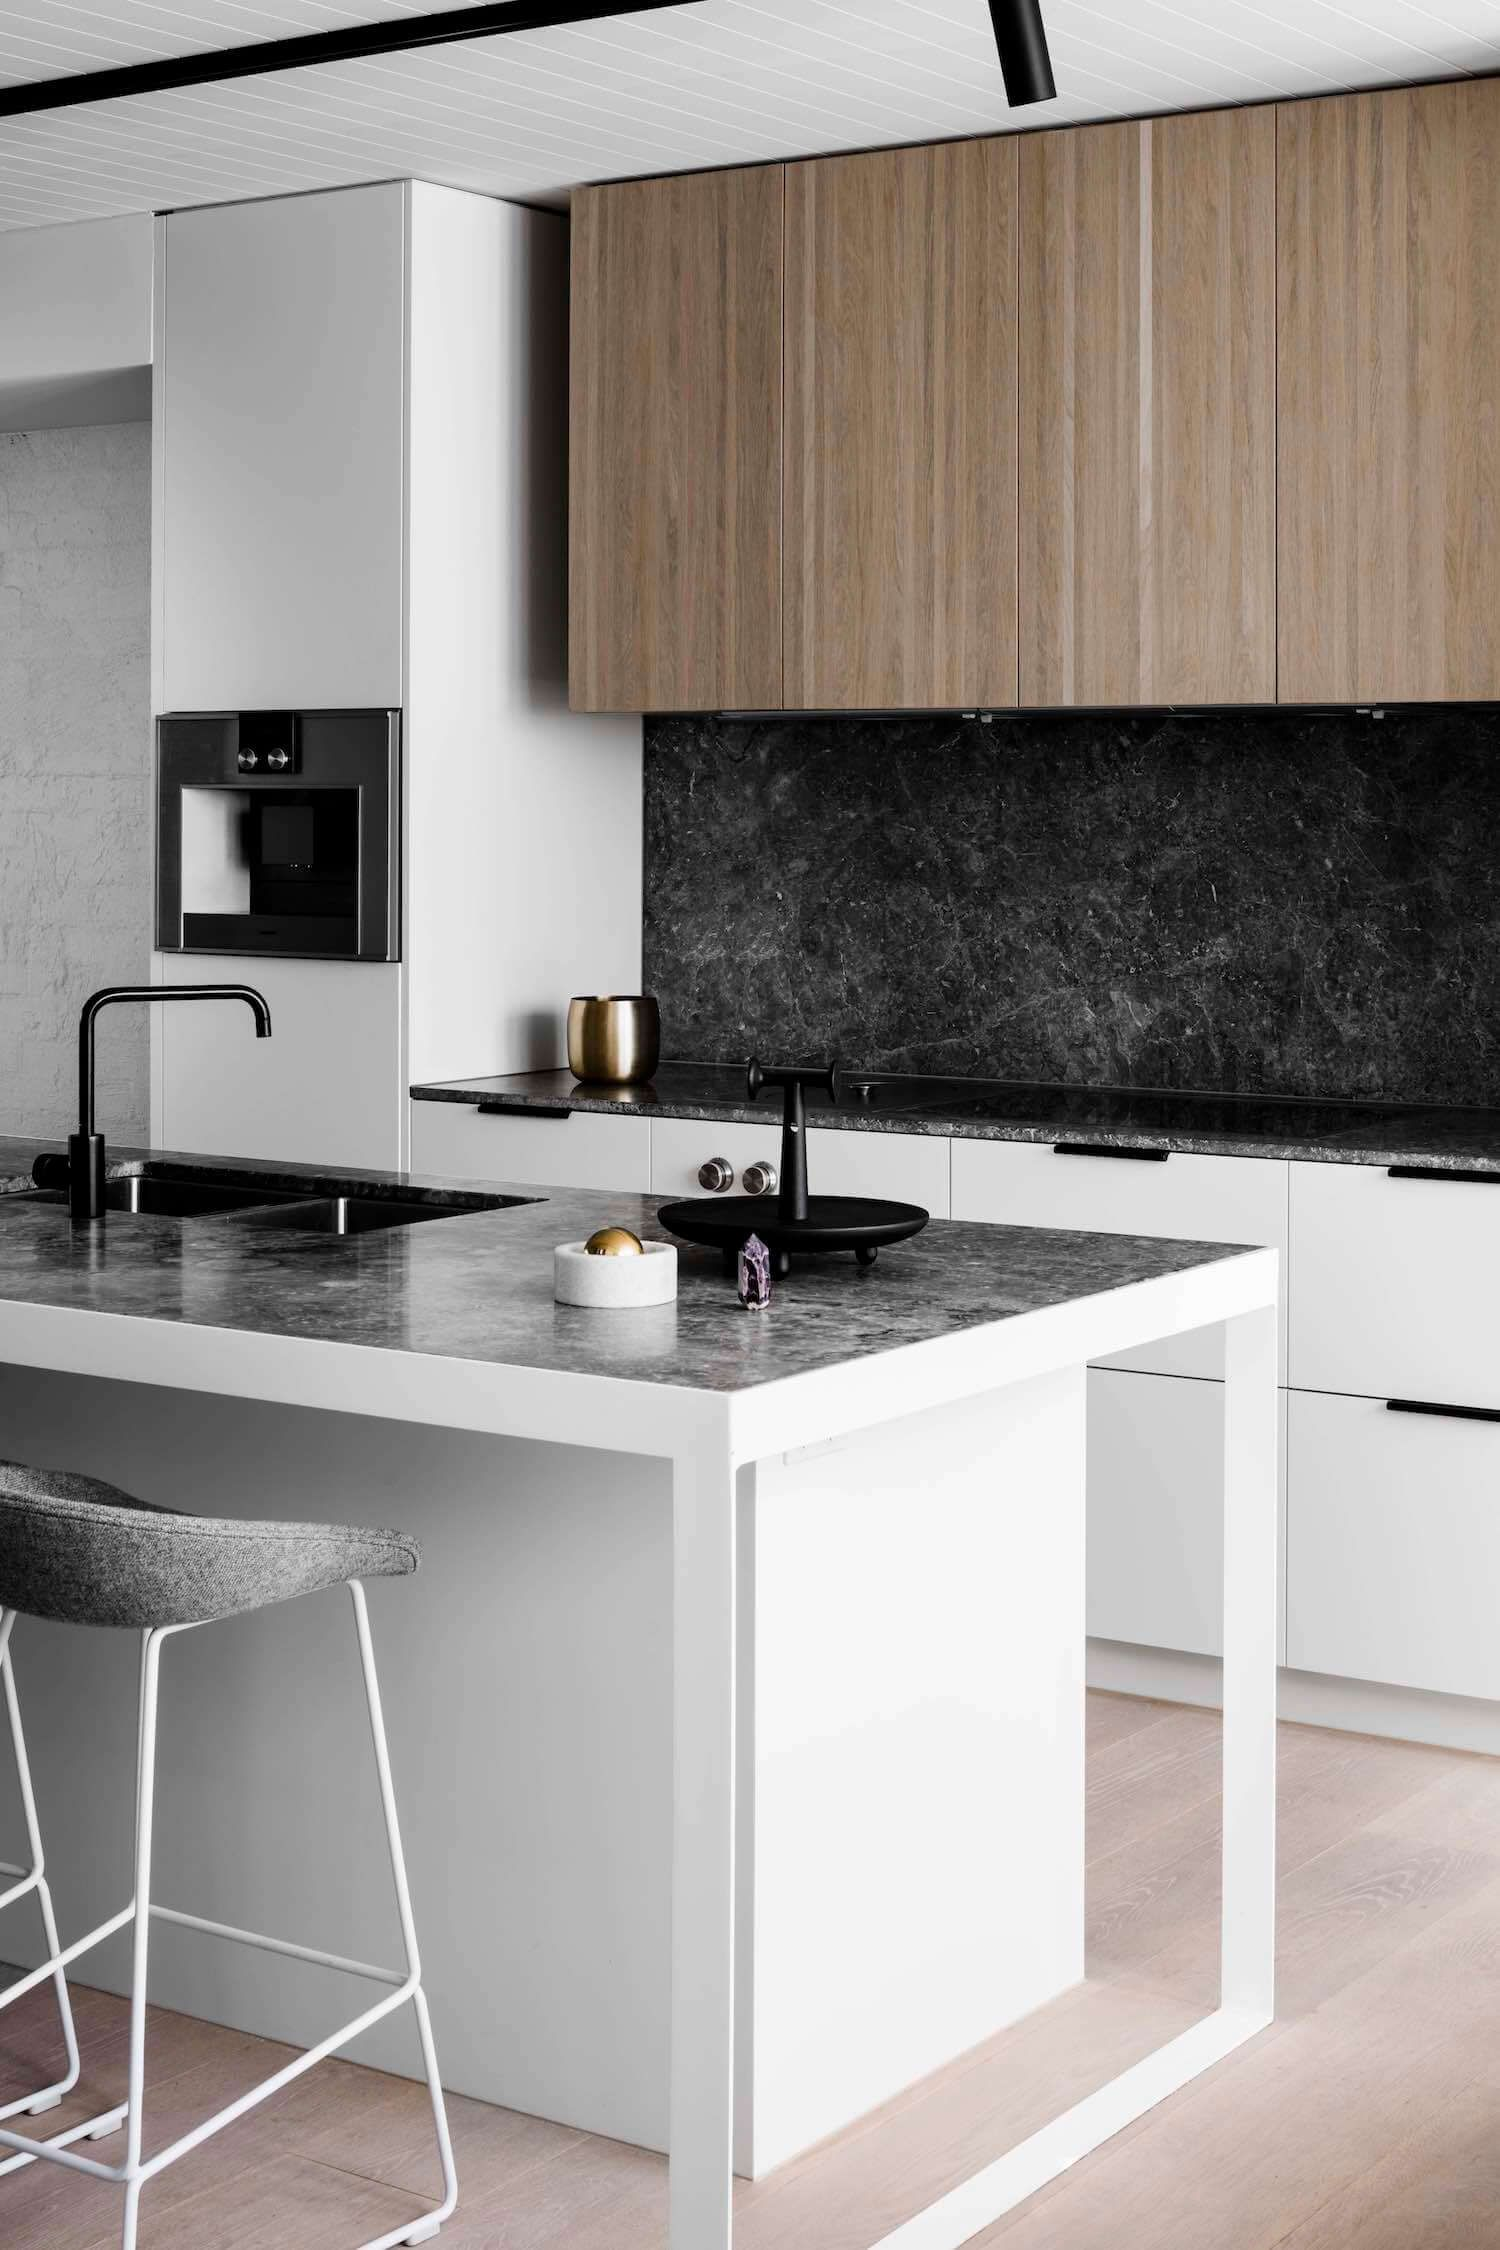 Bell Street Residence by Techne Architecture | Cocinas | Pinterest ...